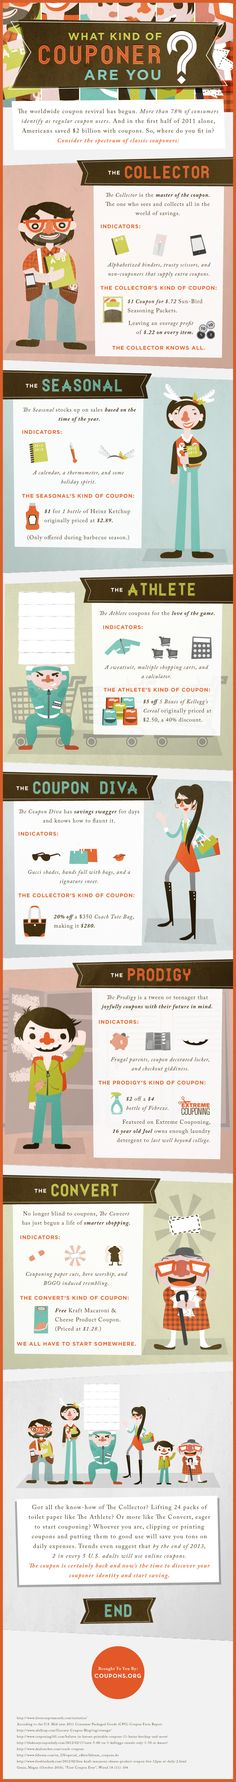 If yours is a Brand that loves to offer coupons, it might be interesting to know that couponers come in a variety of flavors...